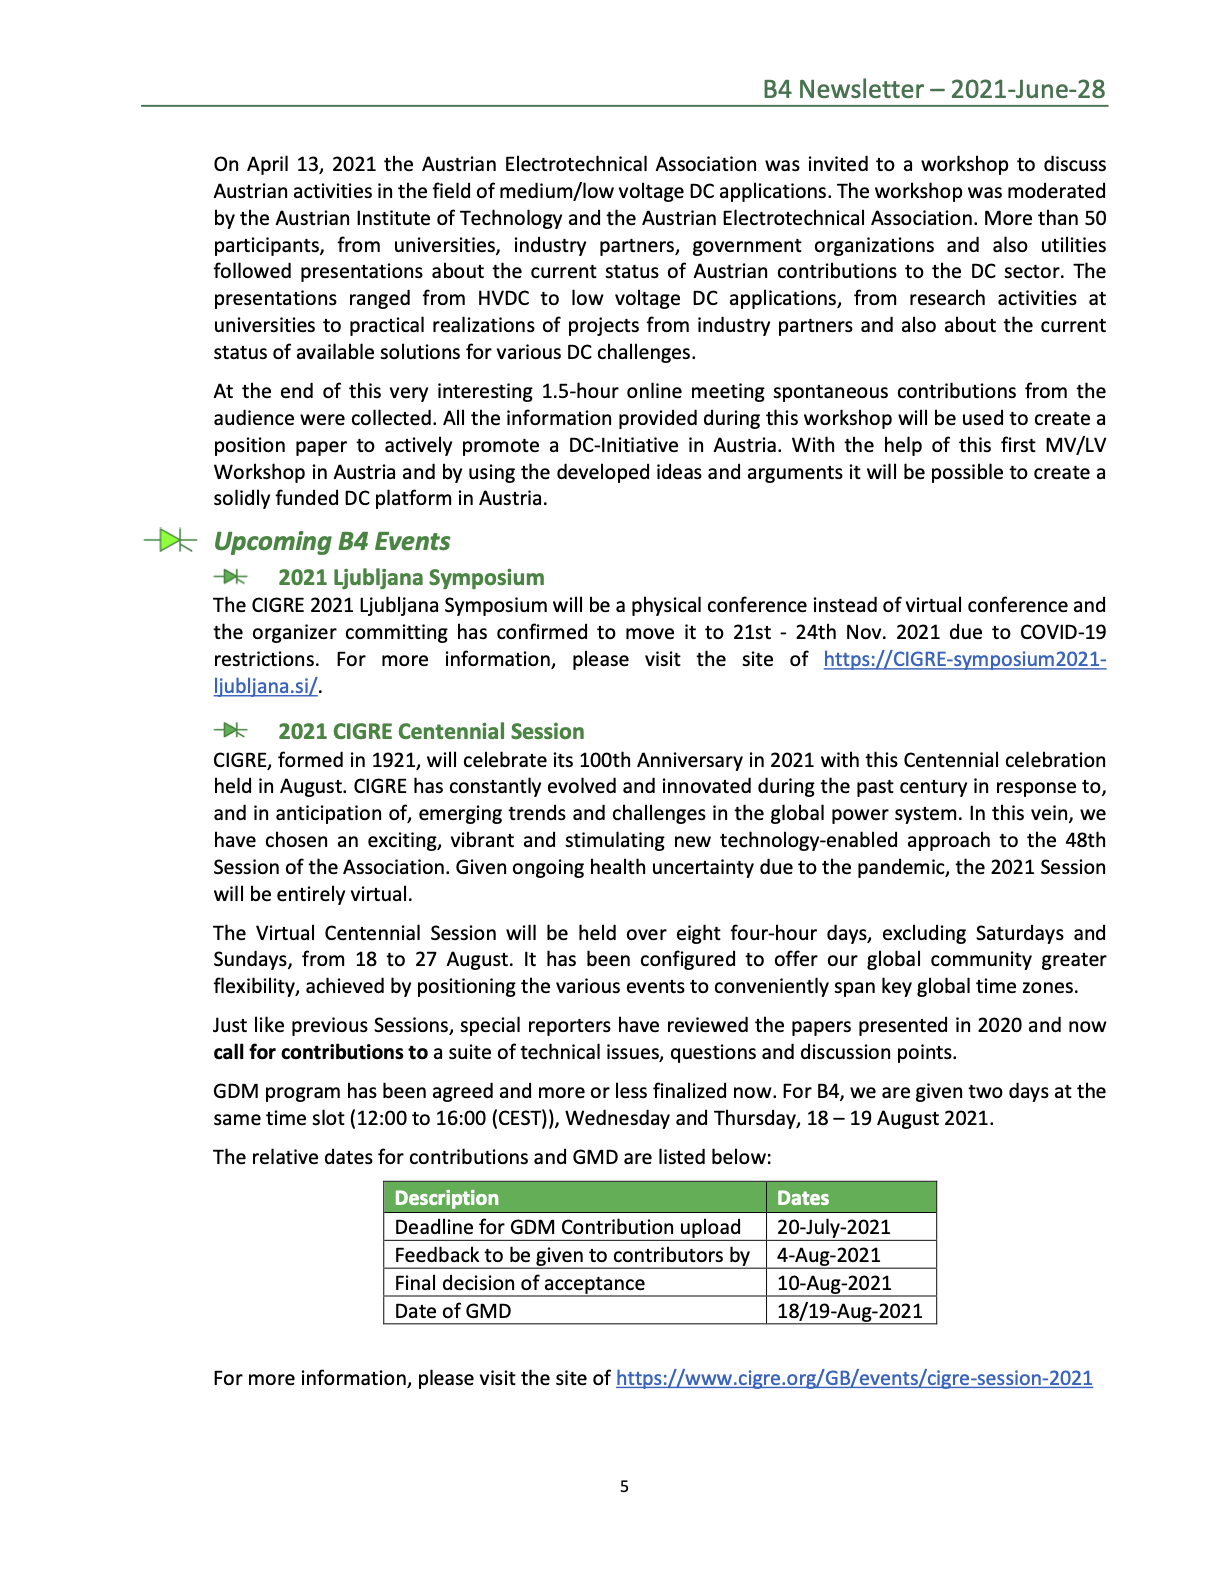 B4Newsletter_2021-June-28_Page5